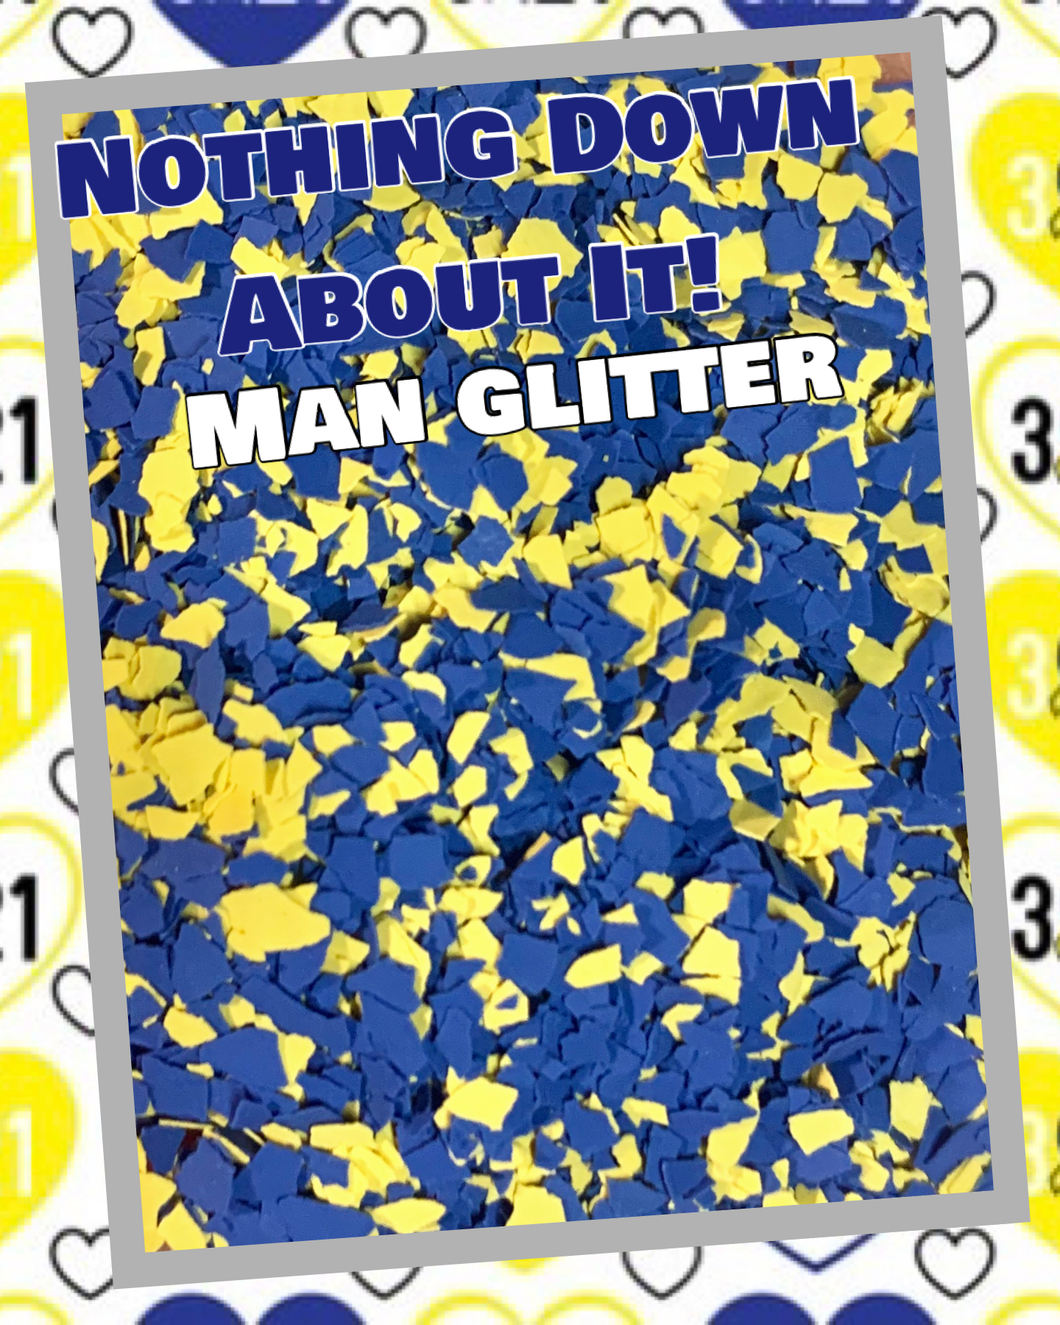 NOTHING DOWN ABOUT IT! - man glitter